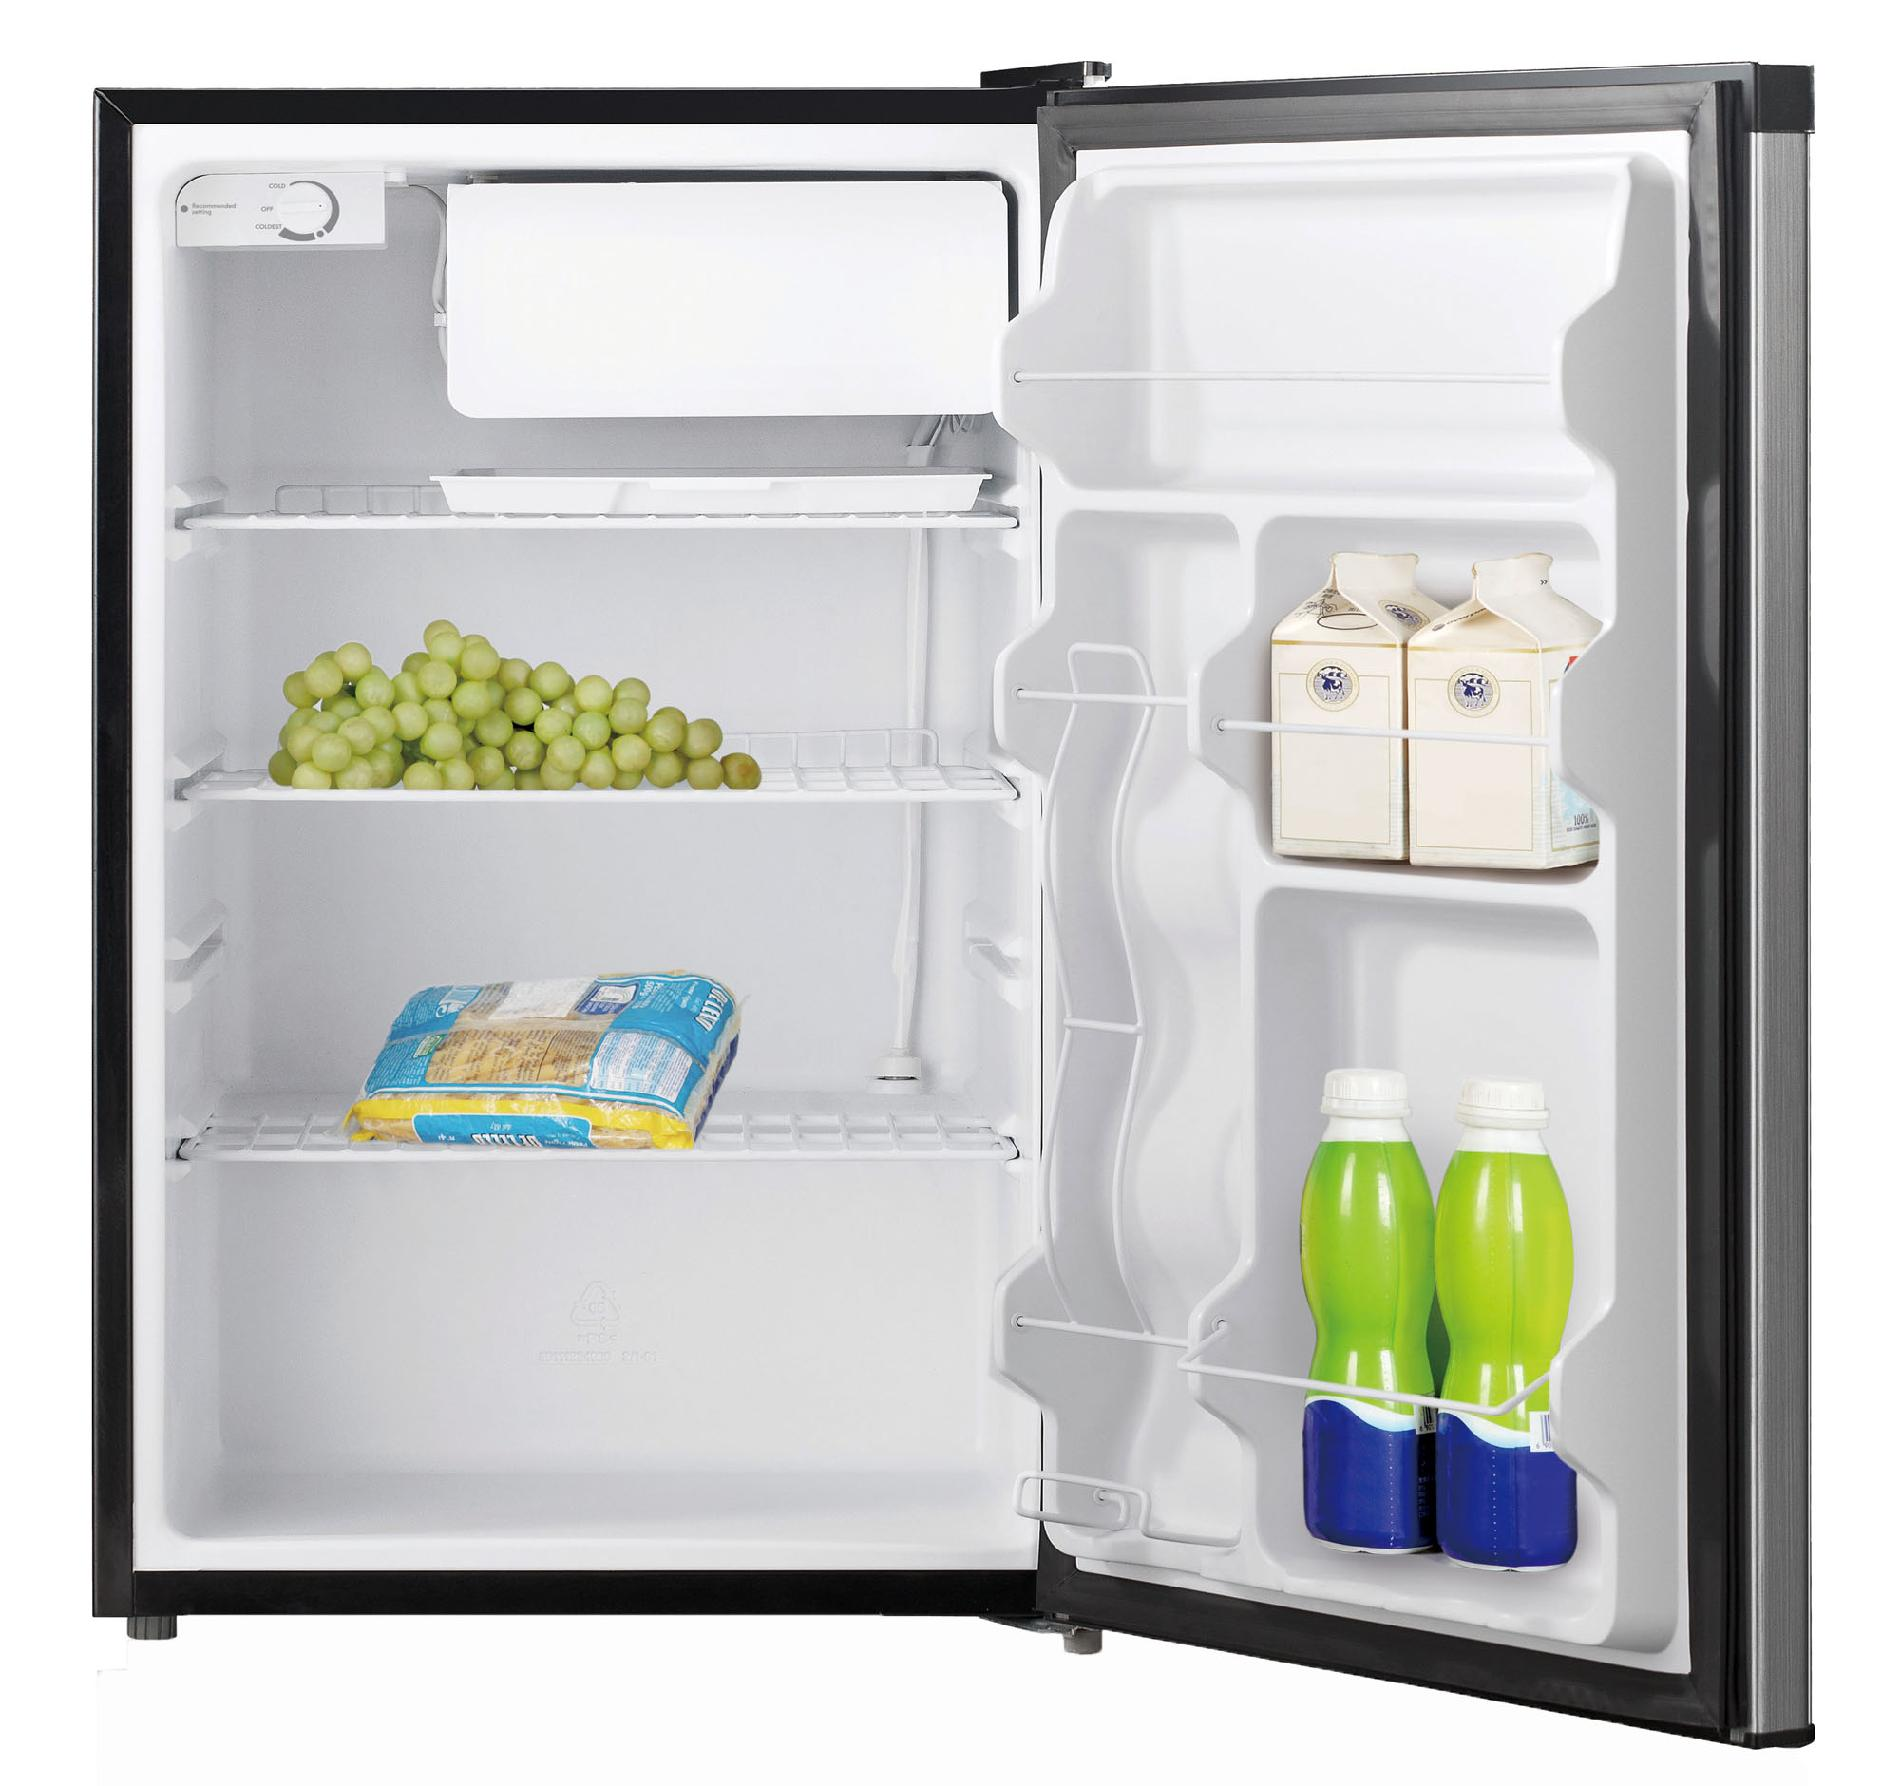 Kenmore 99783 4.4 cu. ft. Compact Refrigerator - Stainless Steel